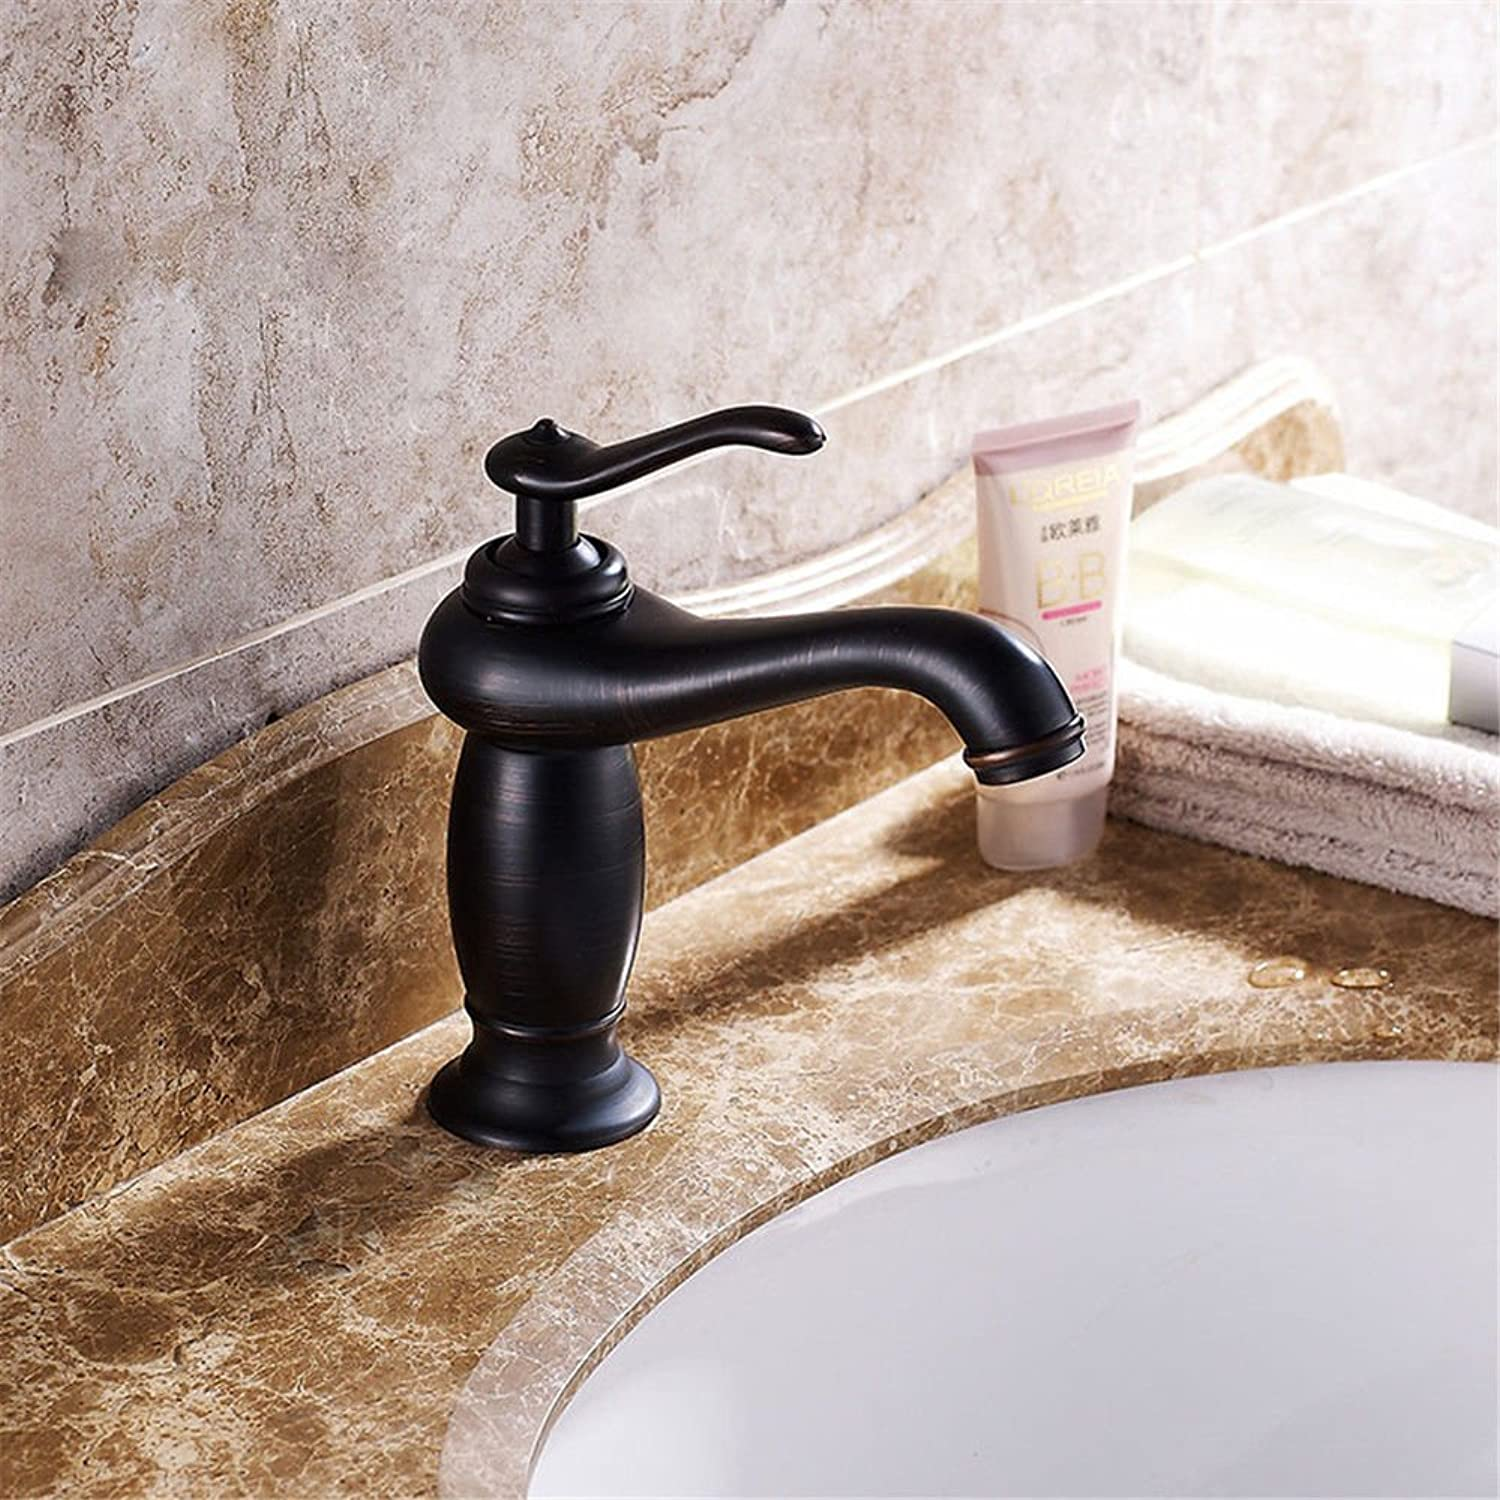 Fbict European Antique Basin Hot and Cold Water Faucet Copper Black Bronze Faucet for Kitchen Bathroom Faucet Bid Tap